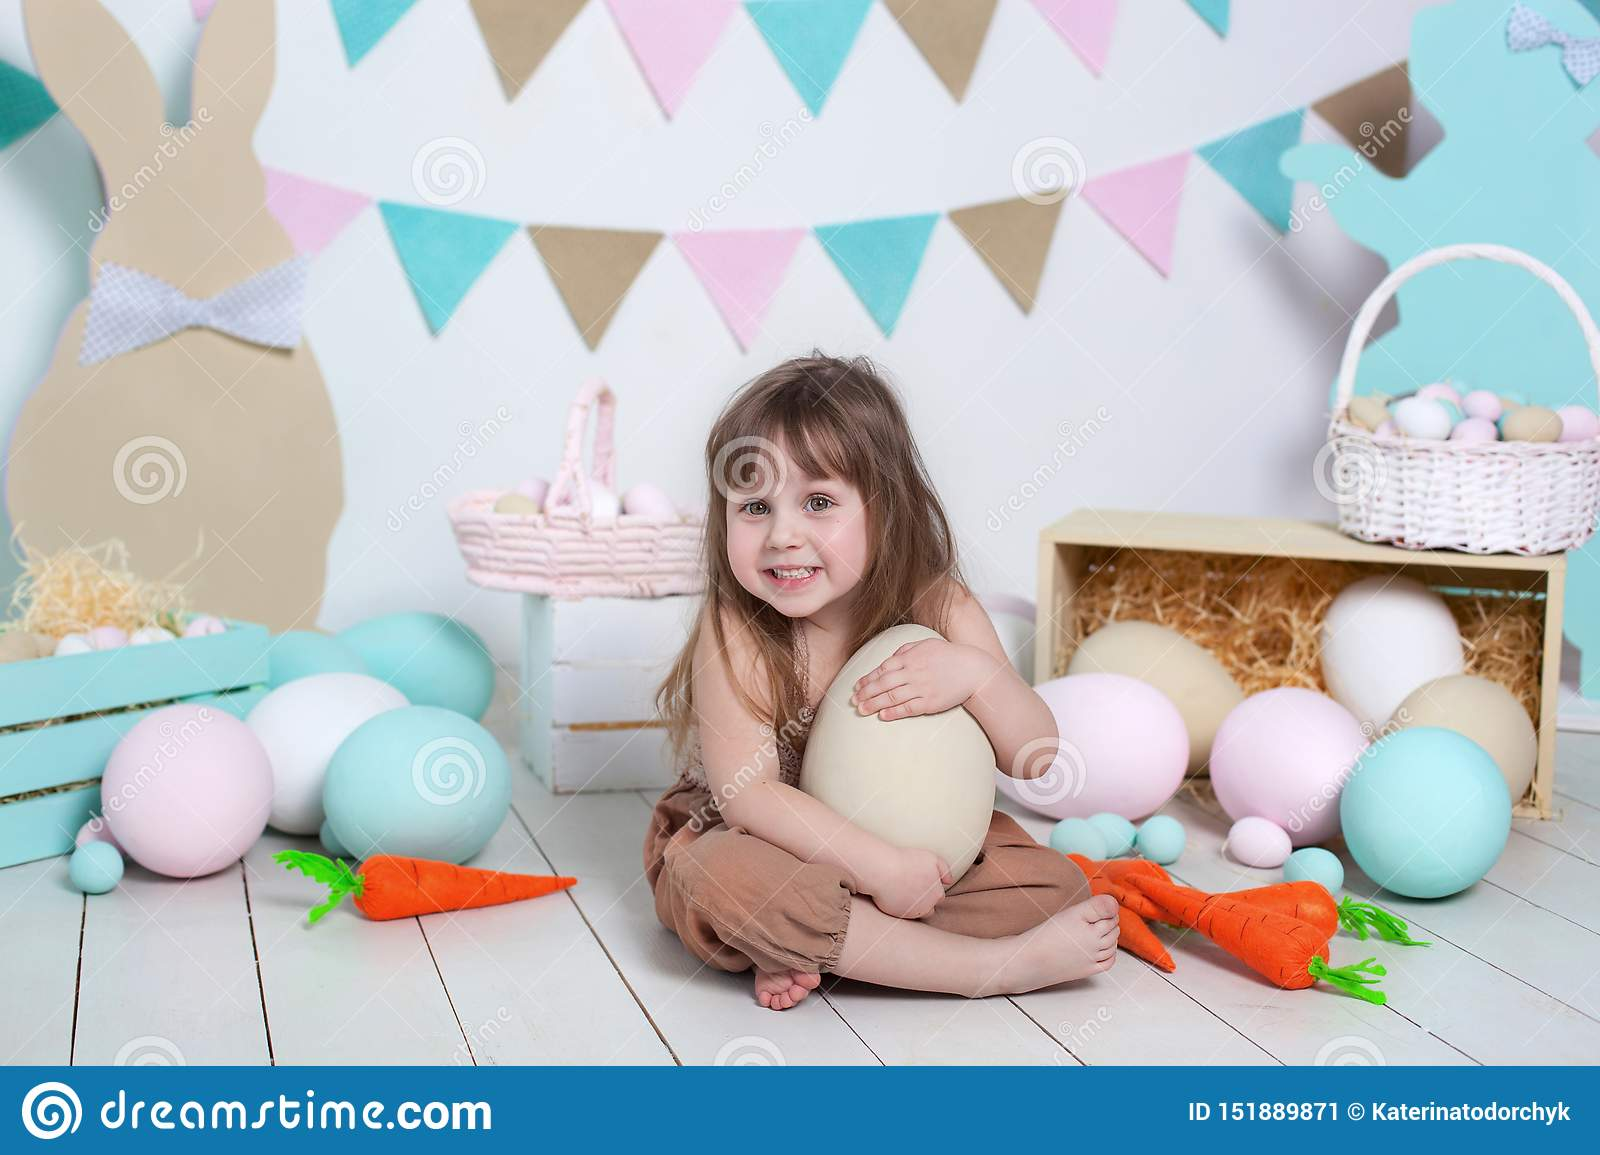 Easter! Little girl in overalls sits with a large Easter egg. Easter location, decorations. Family holidays, traditions. Colorful